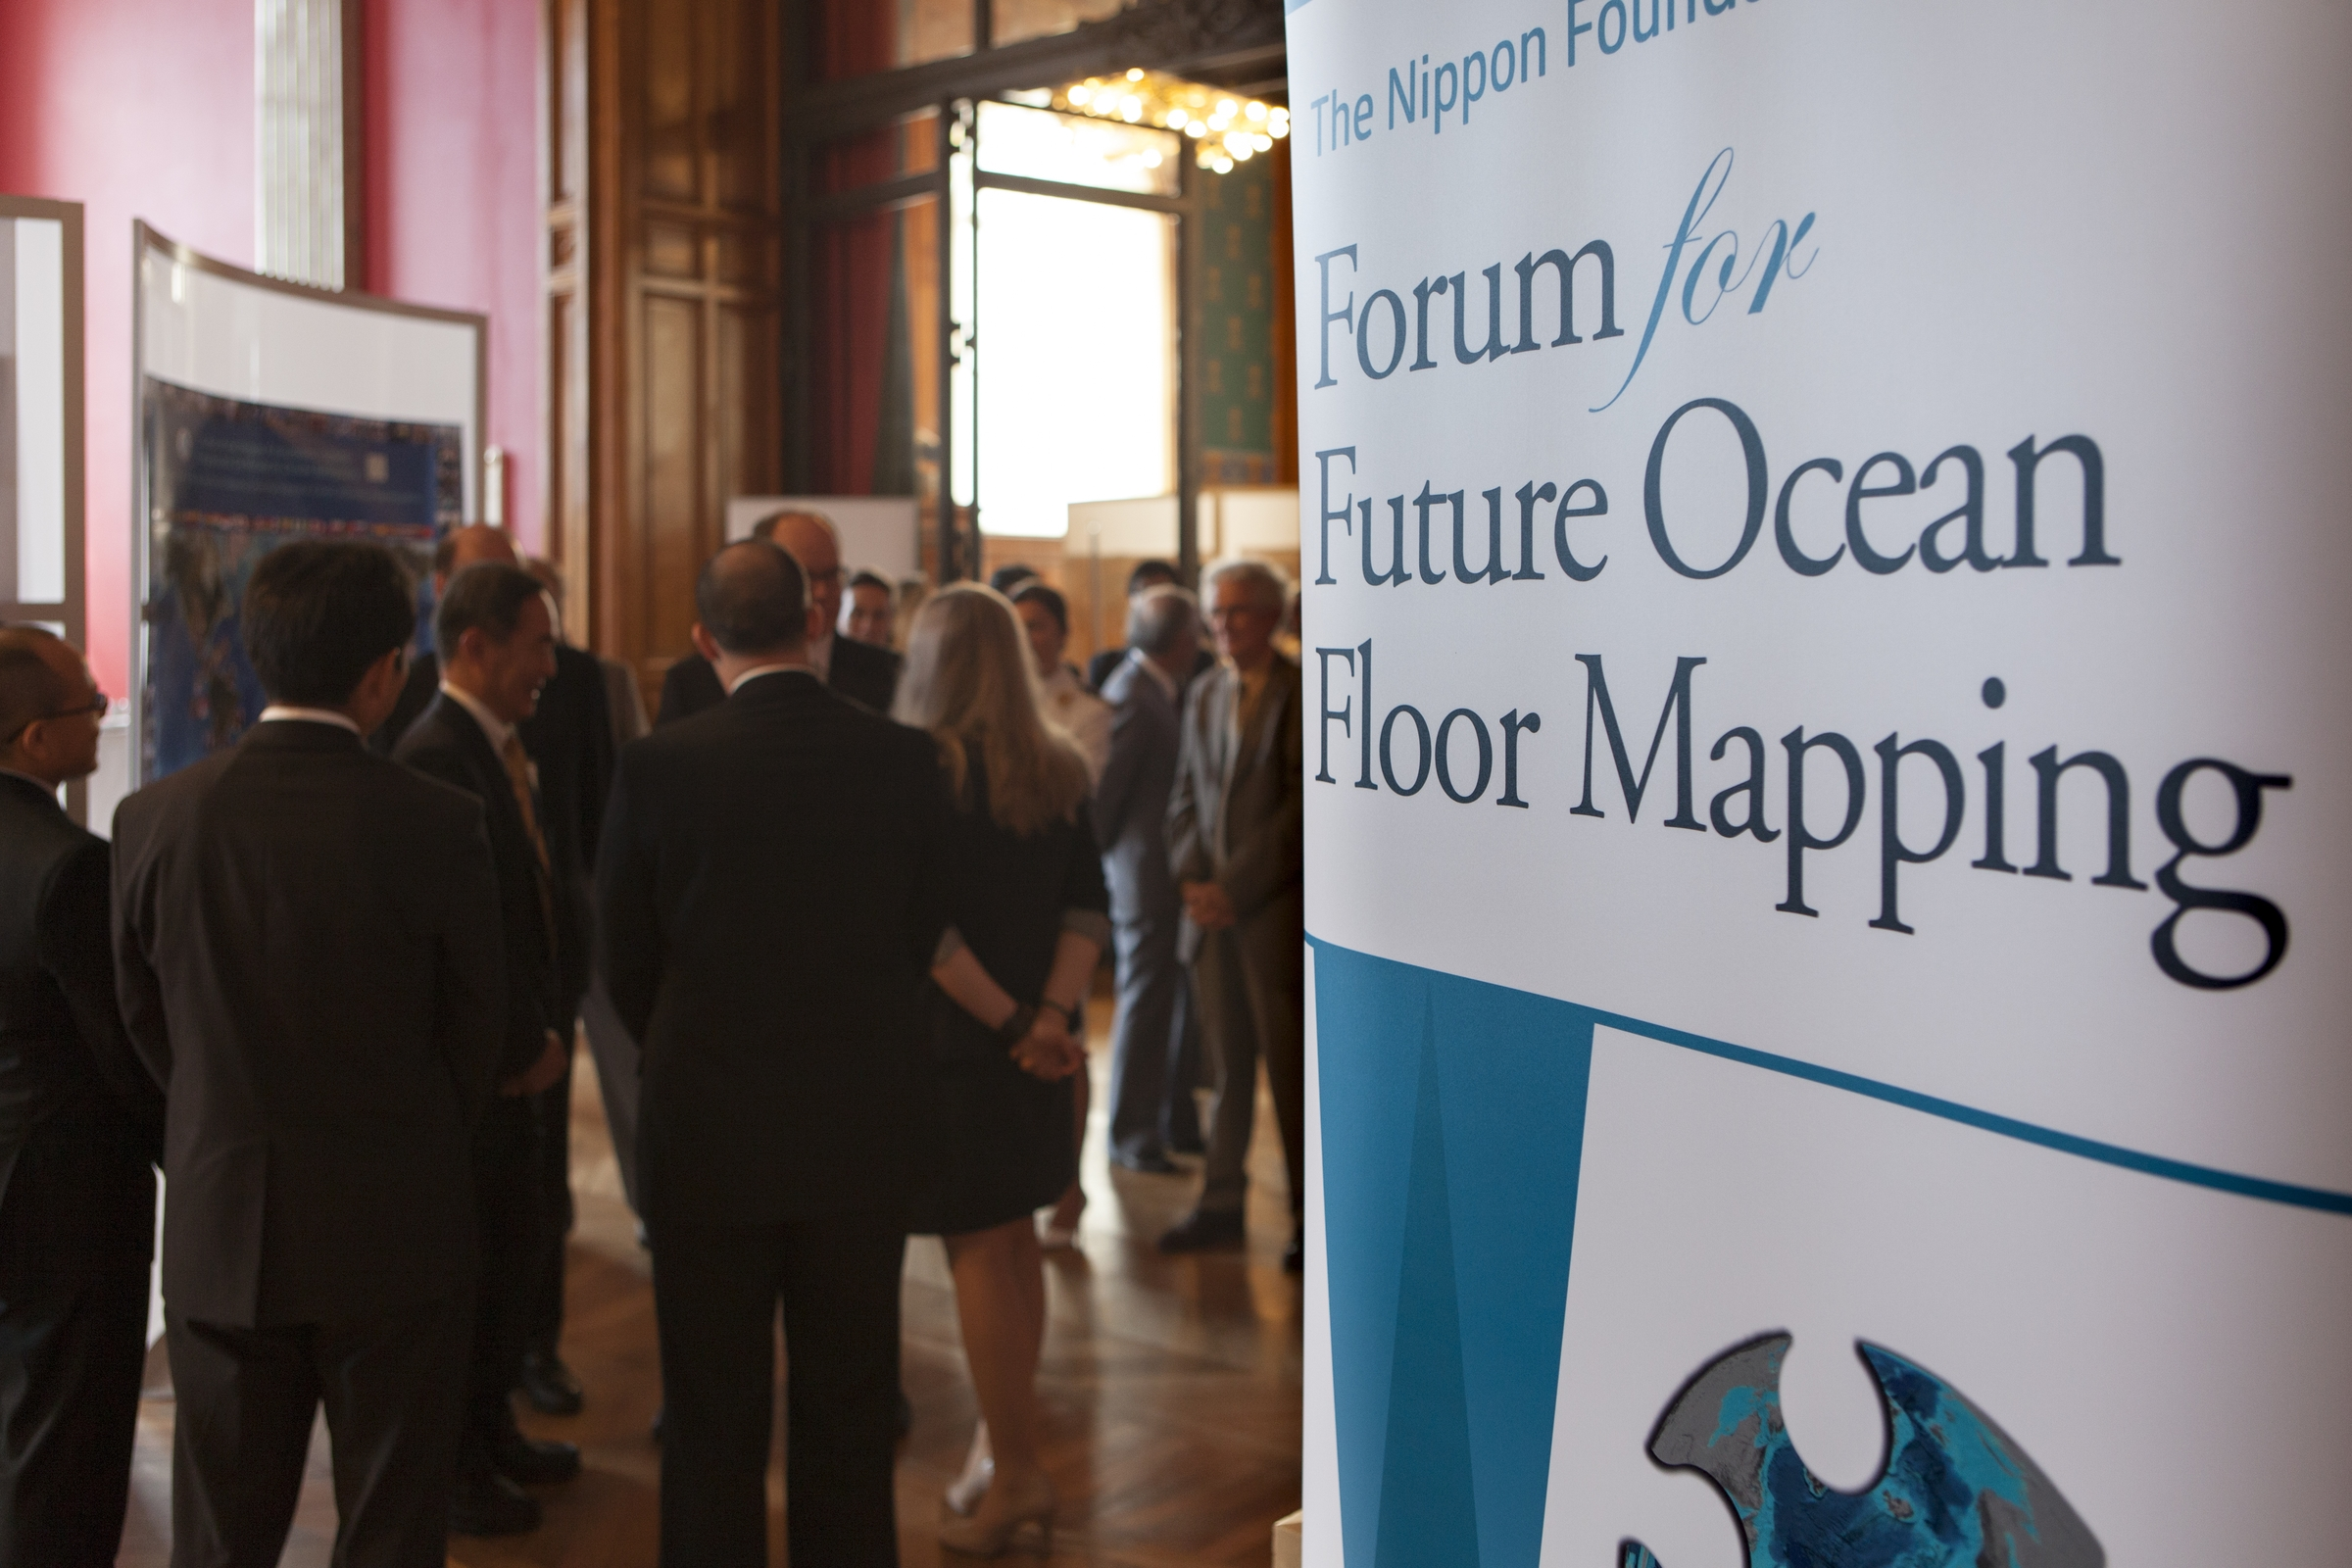 The Forum for Future Ocean Floor Mapping, held at the Oceanographic Museum in Monaco